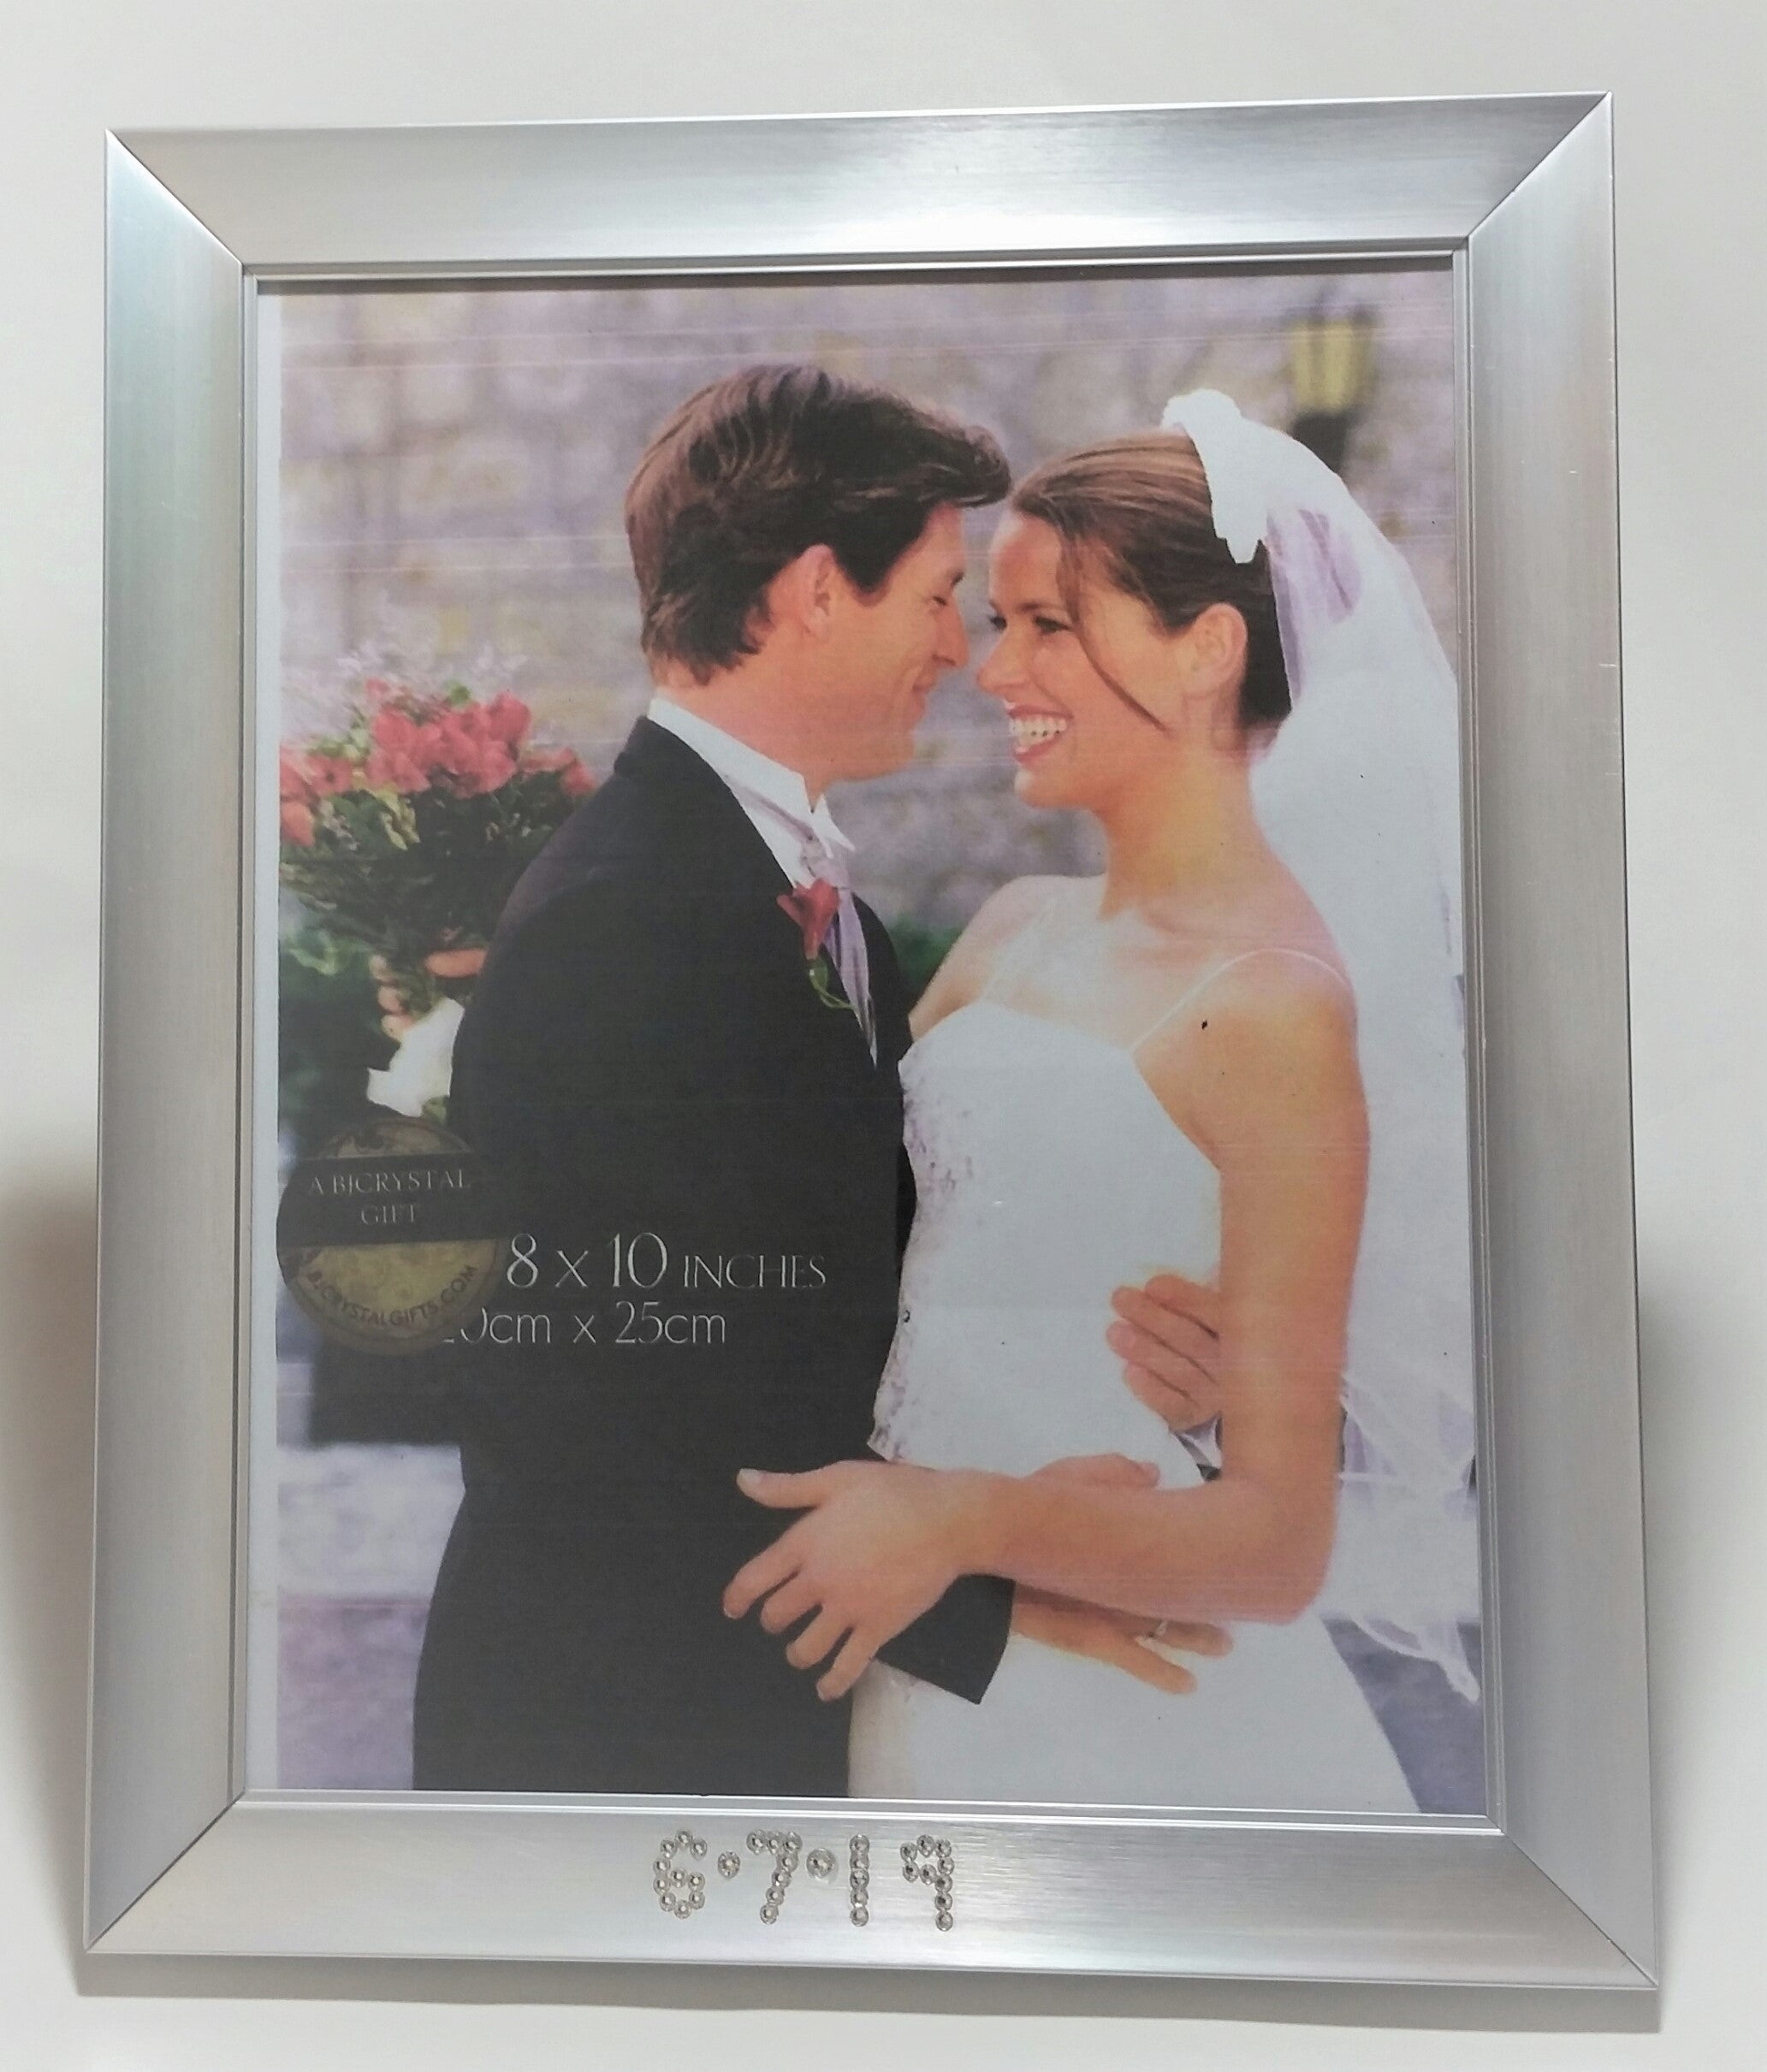 Personalized Wedding Picture Frame - Personalized Engagement Gift - Holds 8 X 10 Photo